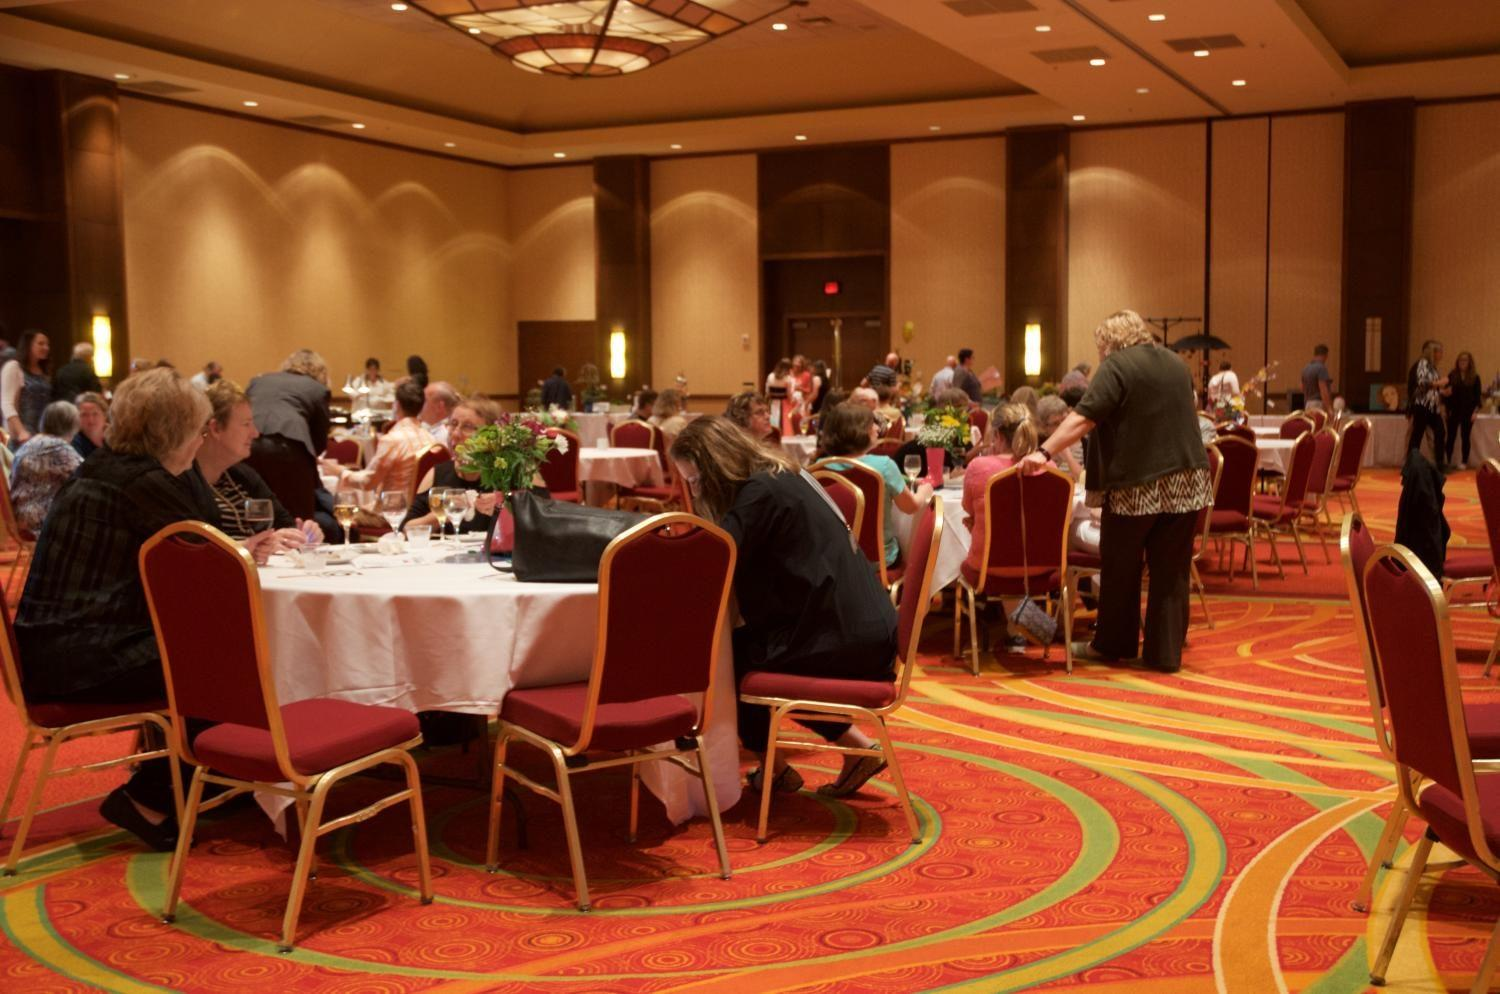 The twelfth annual UAY Festival of Flowers was held at the Coralville Marriott.